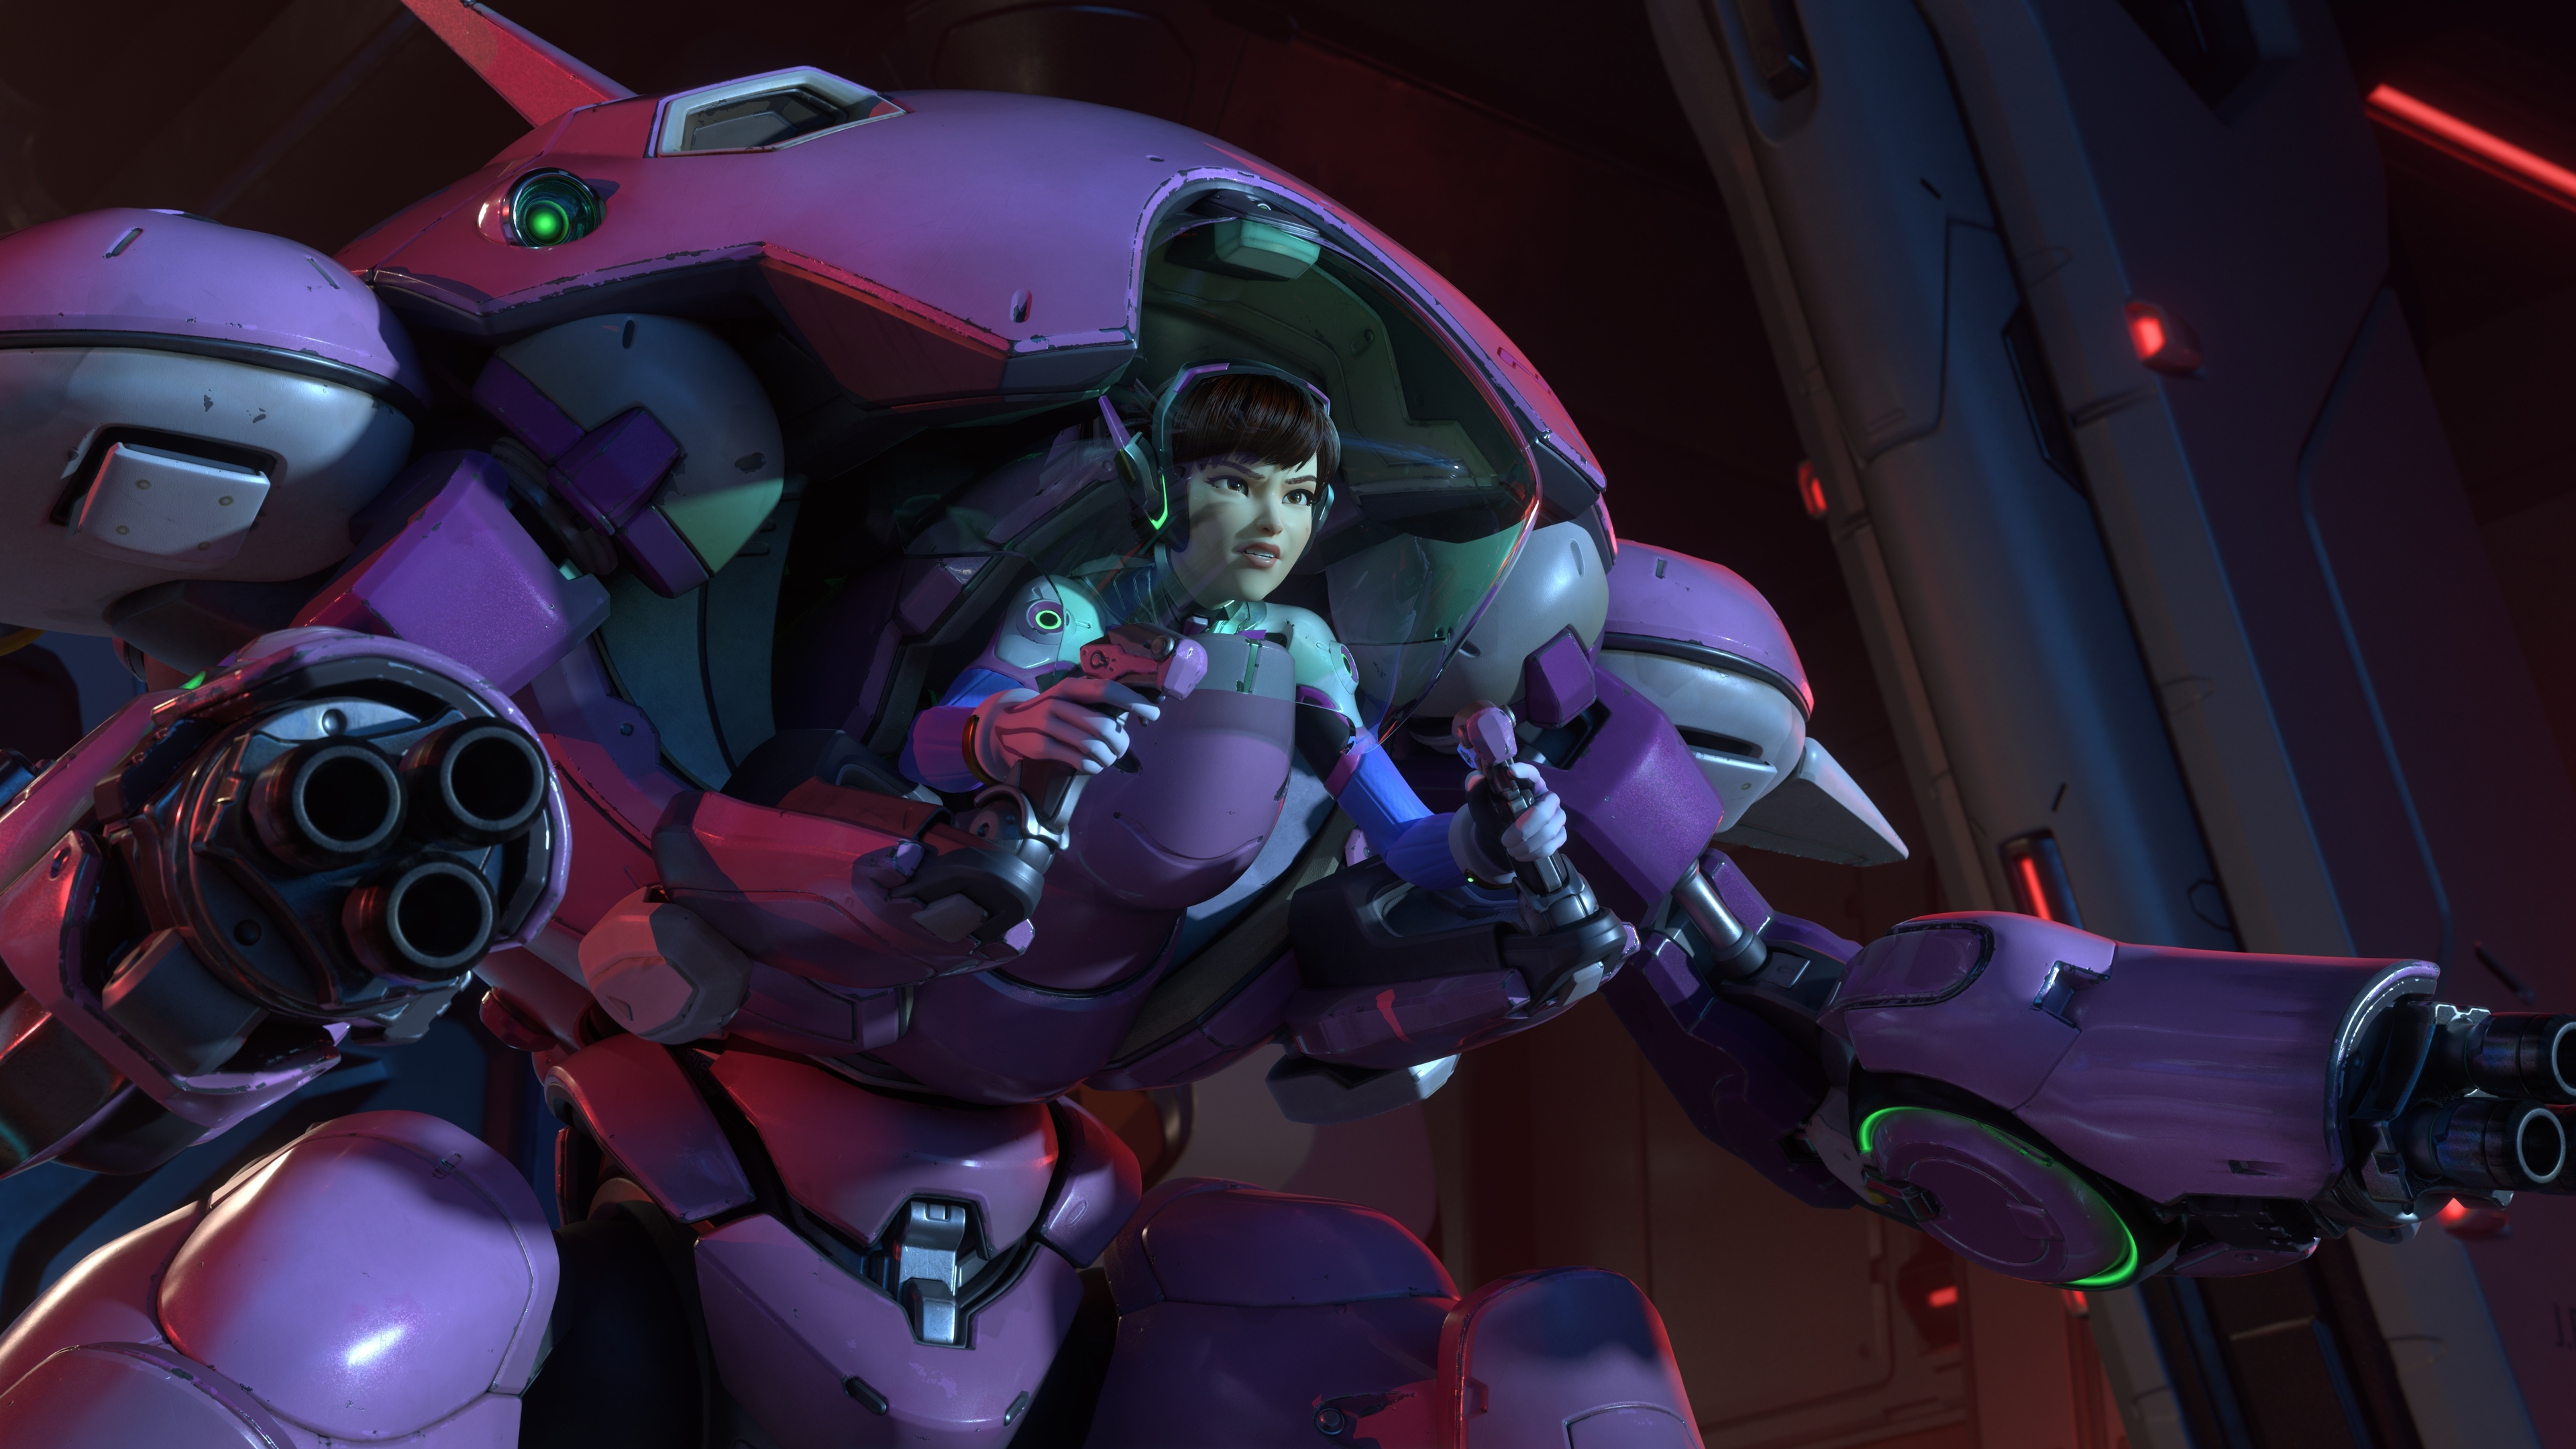 Wallpaper 4k Dva Overwatch Video Game 5k 4k Wallpapers 5k